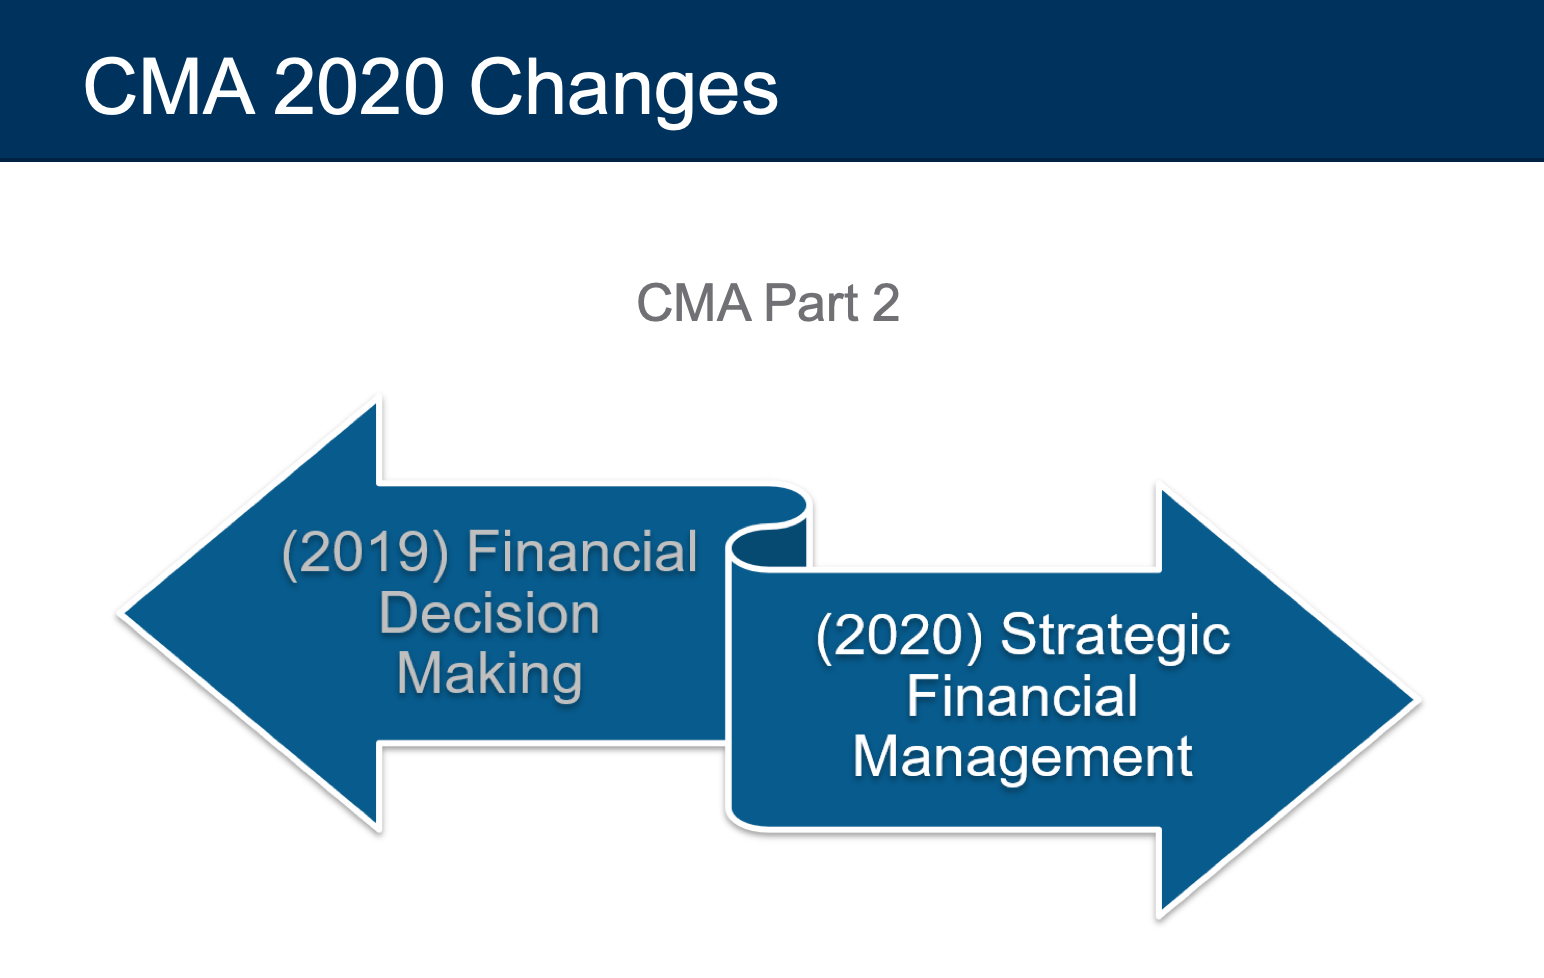 cma exam changes 2020